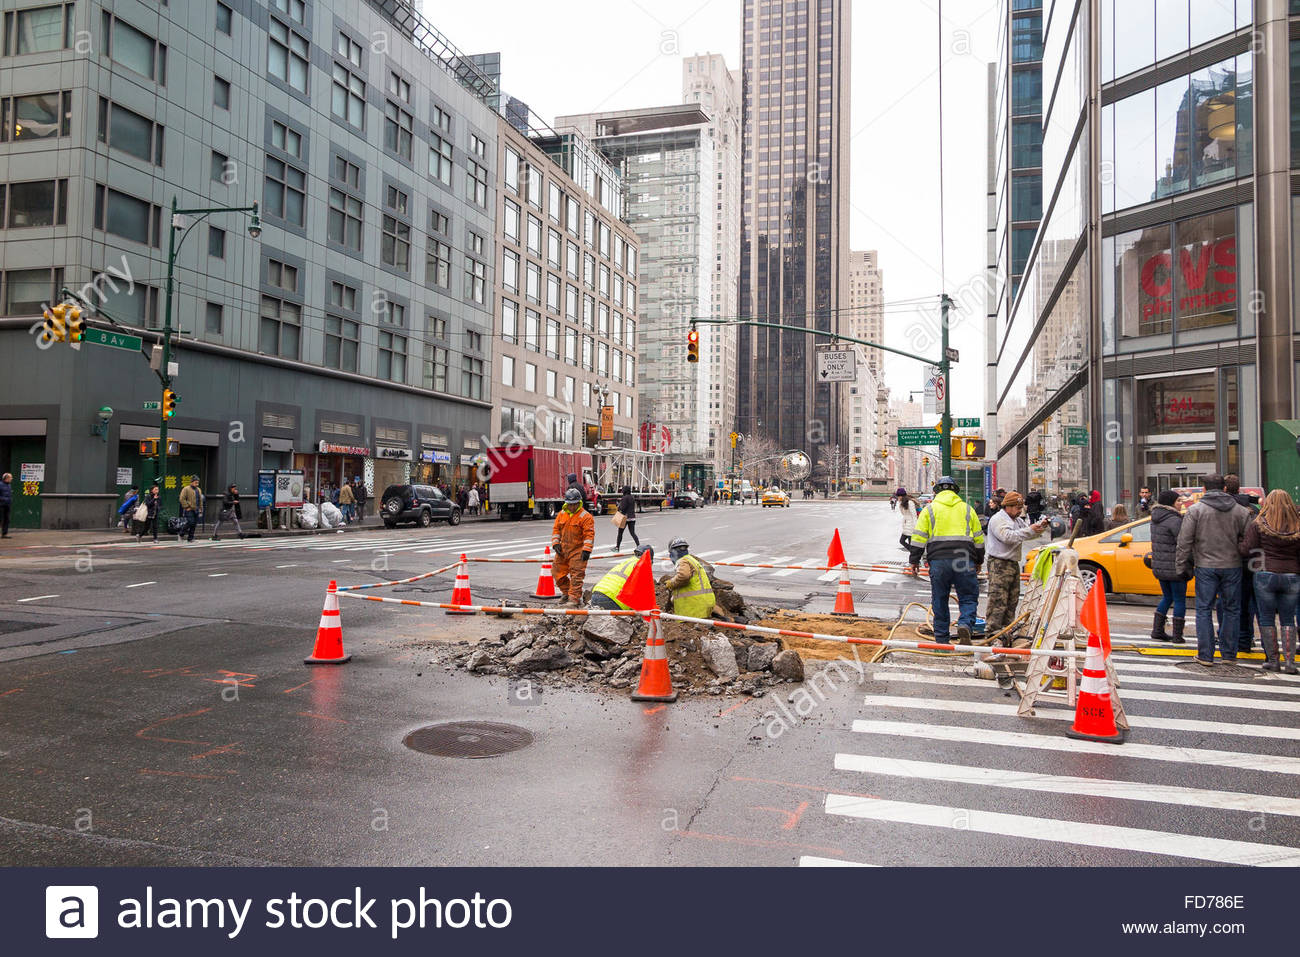 The Museum of Modern Art (MoMA) New York City, Public workers digging a hole on the street of New York City to ...